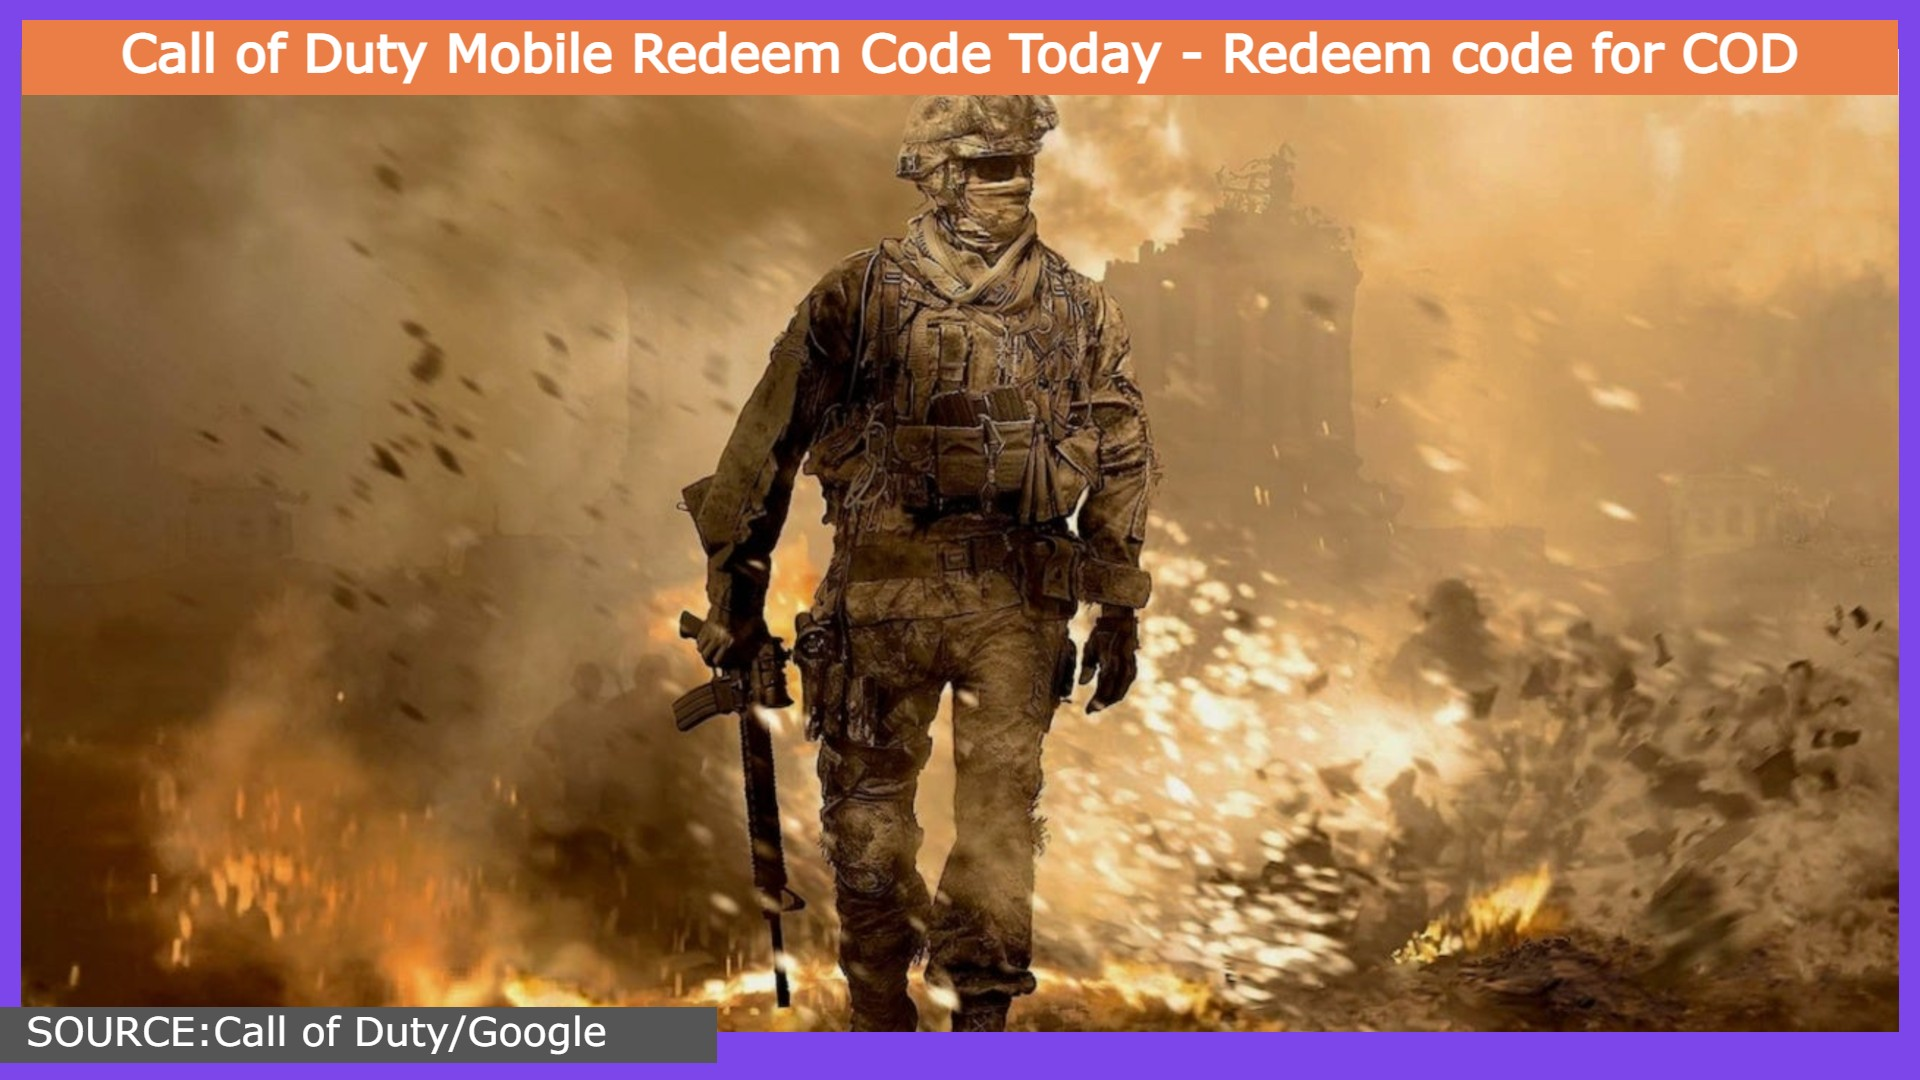 Call of Duty Mobile Redeem Code Today